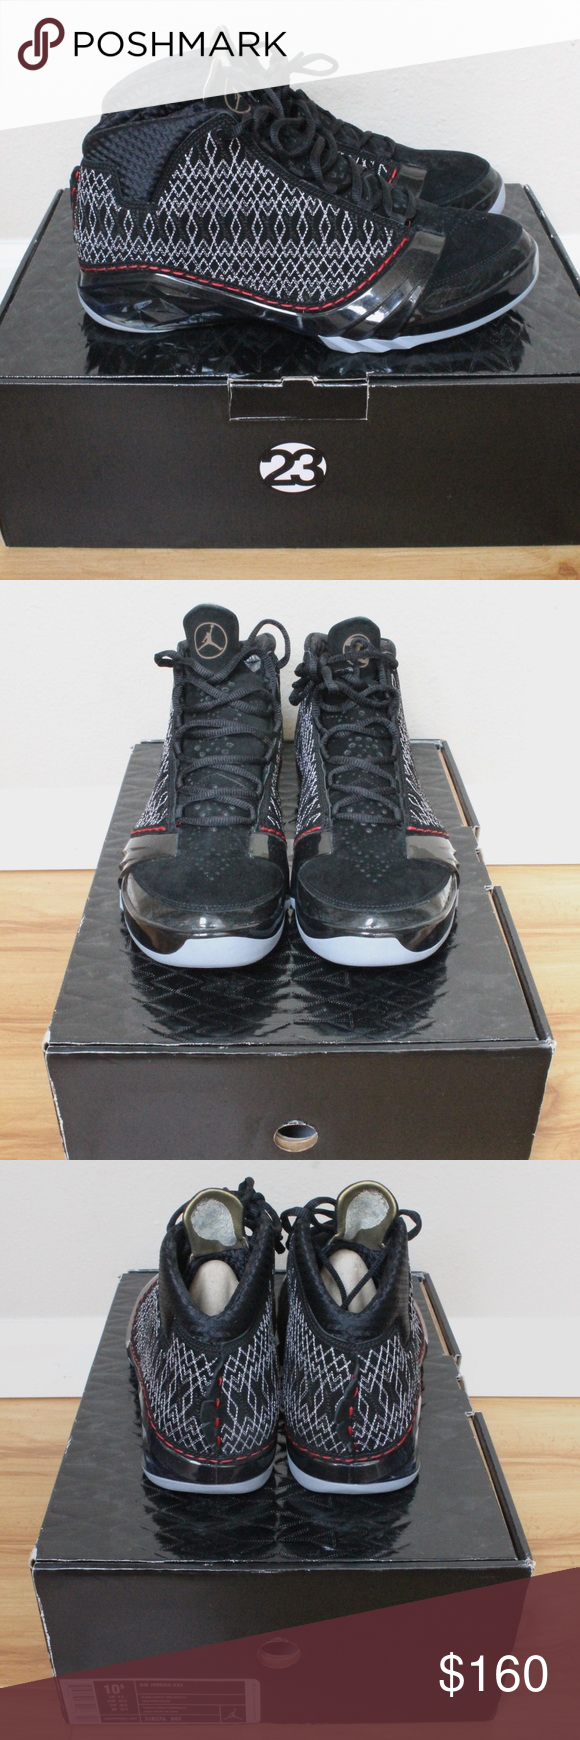 huge discount f1db1 4c36c Nike Men s Air Jordan XX3 - Black Grey (Size 10.5) Nike Men s Air Jordan XX3  - Black Varsity Red-Stealth (Size 10.5) - 318376001 Brand new, never worn  Air ...